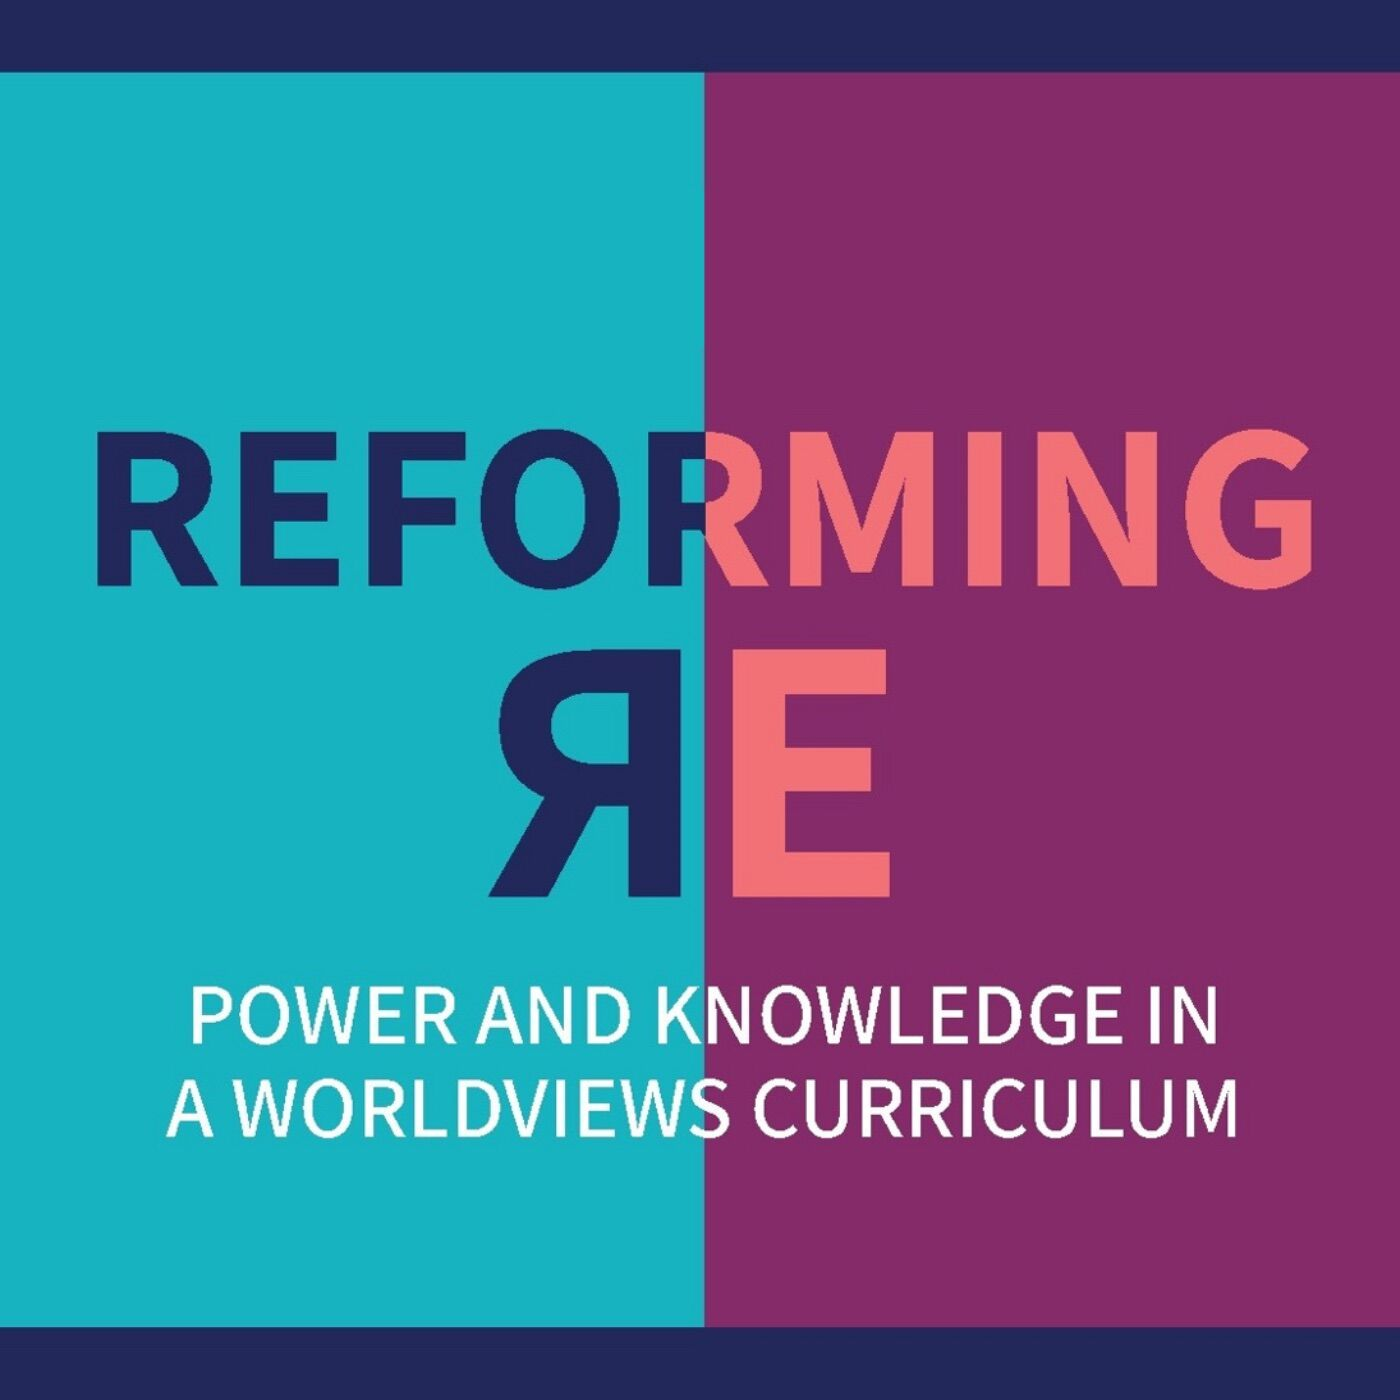 Reforming Religious Education: Power and Knowledge in a Worldviews Curriculum, with Mark Chater